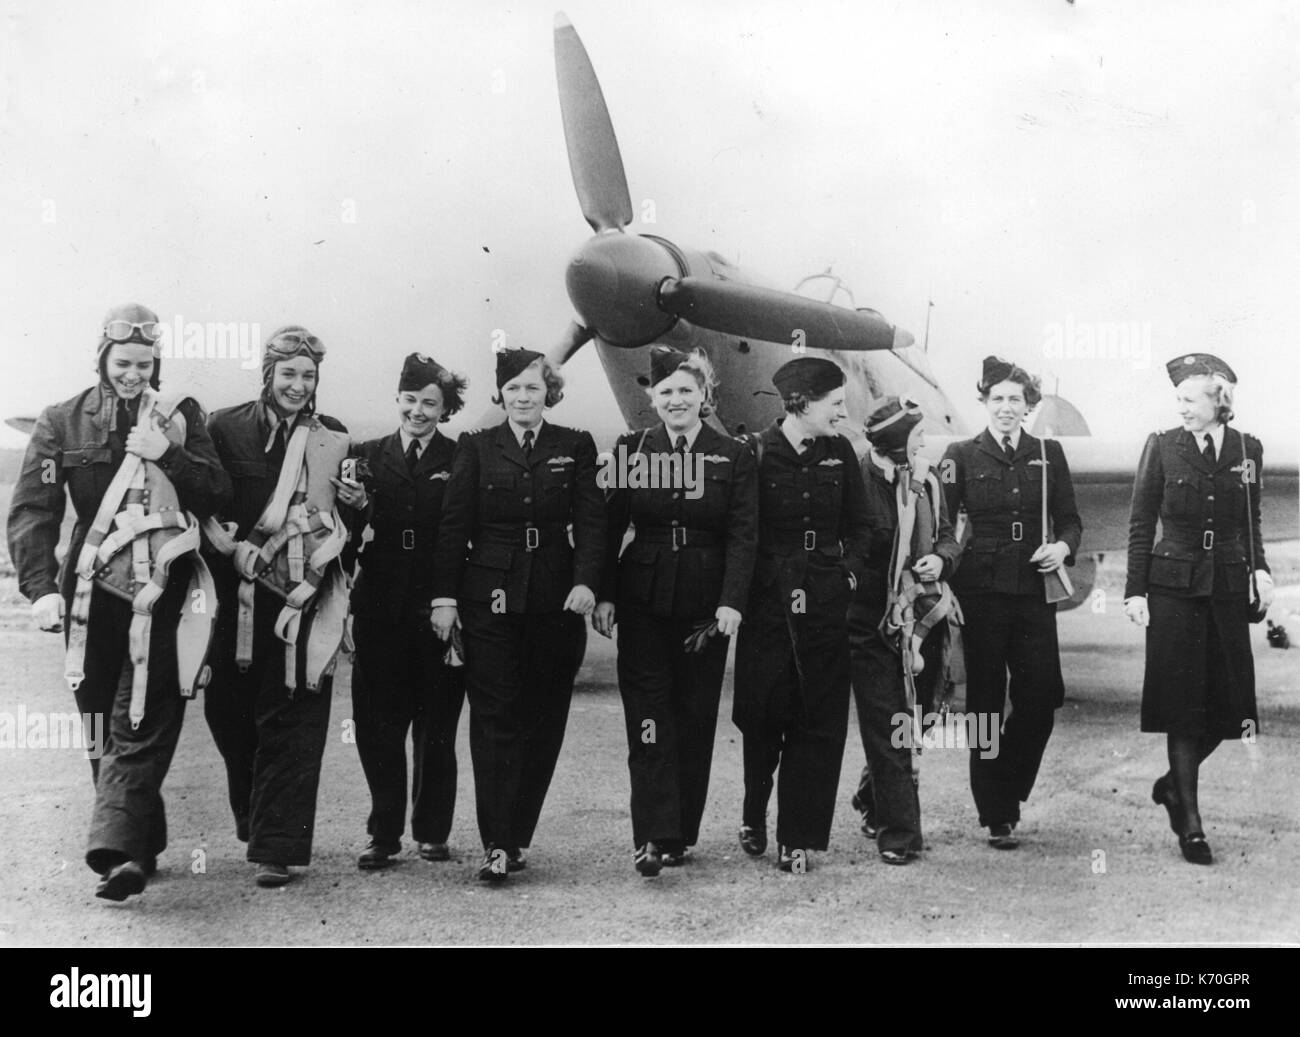 AMERICAN WOMEN WHO FLY WARSHIPS TO THE MEN WHO FLY THEM AGAINST AXIS -- Women of the United Nations -- U.S. and British members of the A.T.A., ready to take up Hurricane fighter places for delivery to R.A.F. pilots. June 13, 1942. - Stock Image